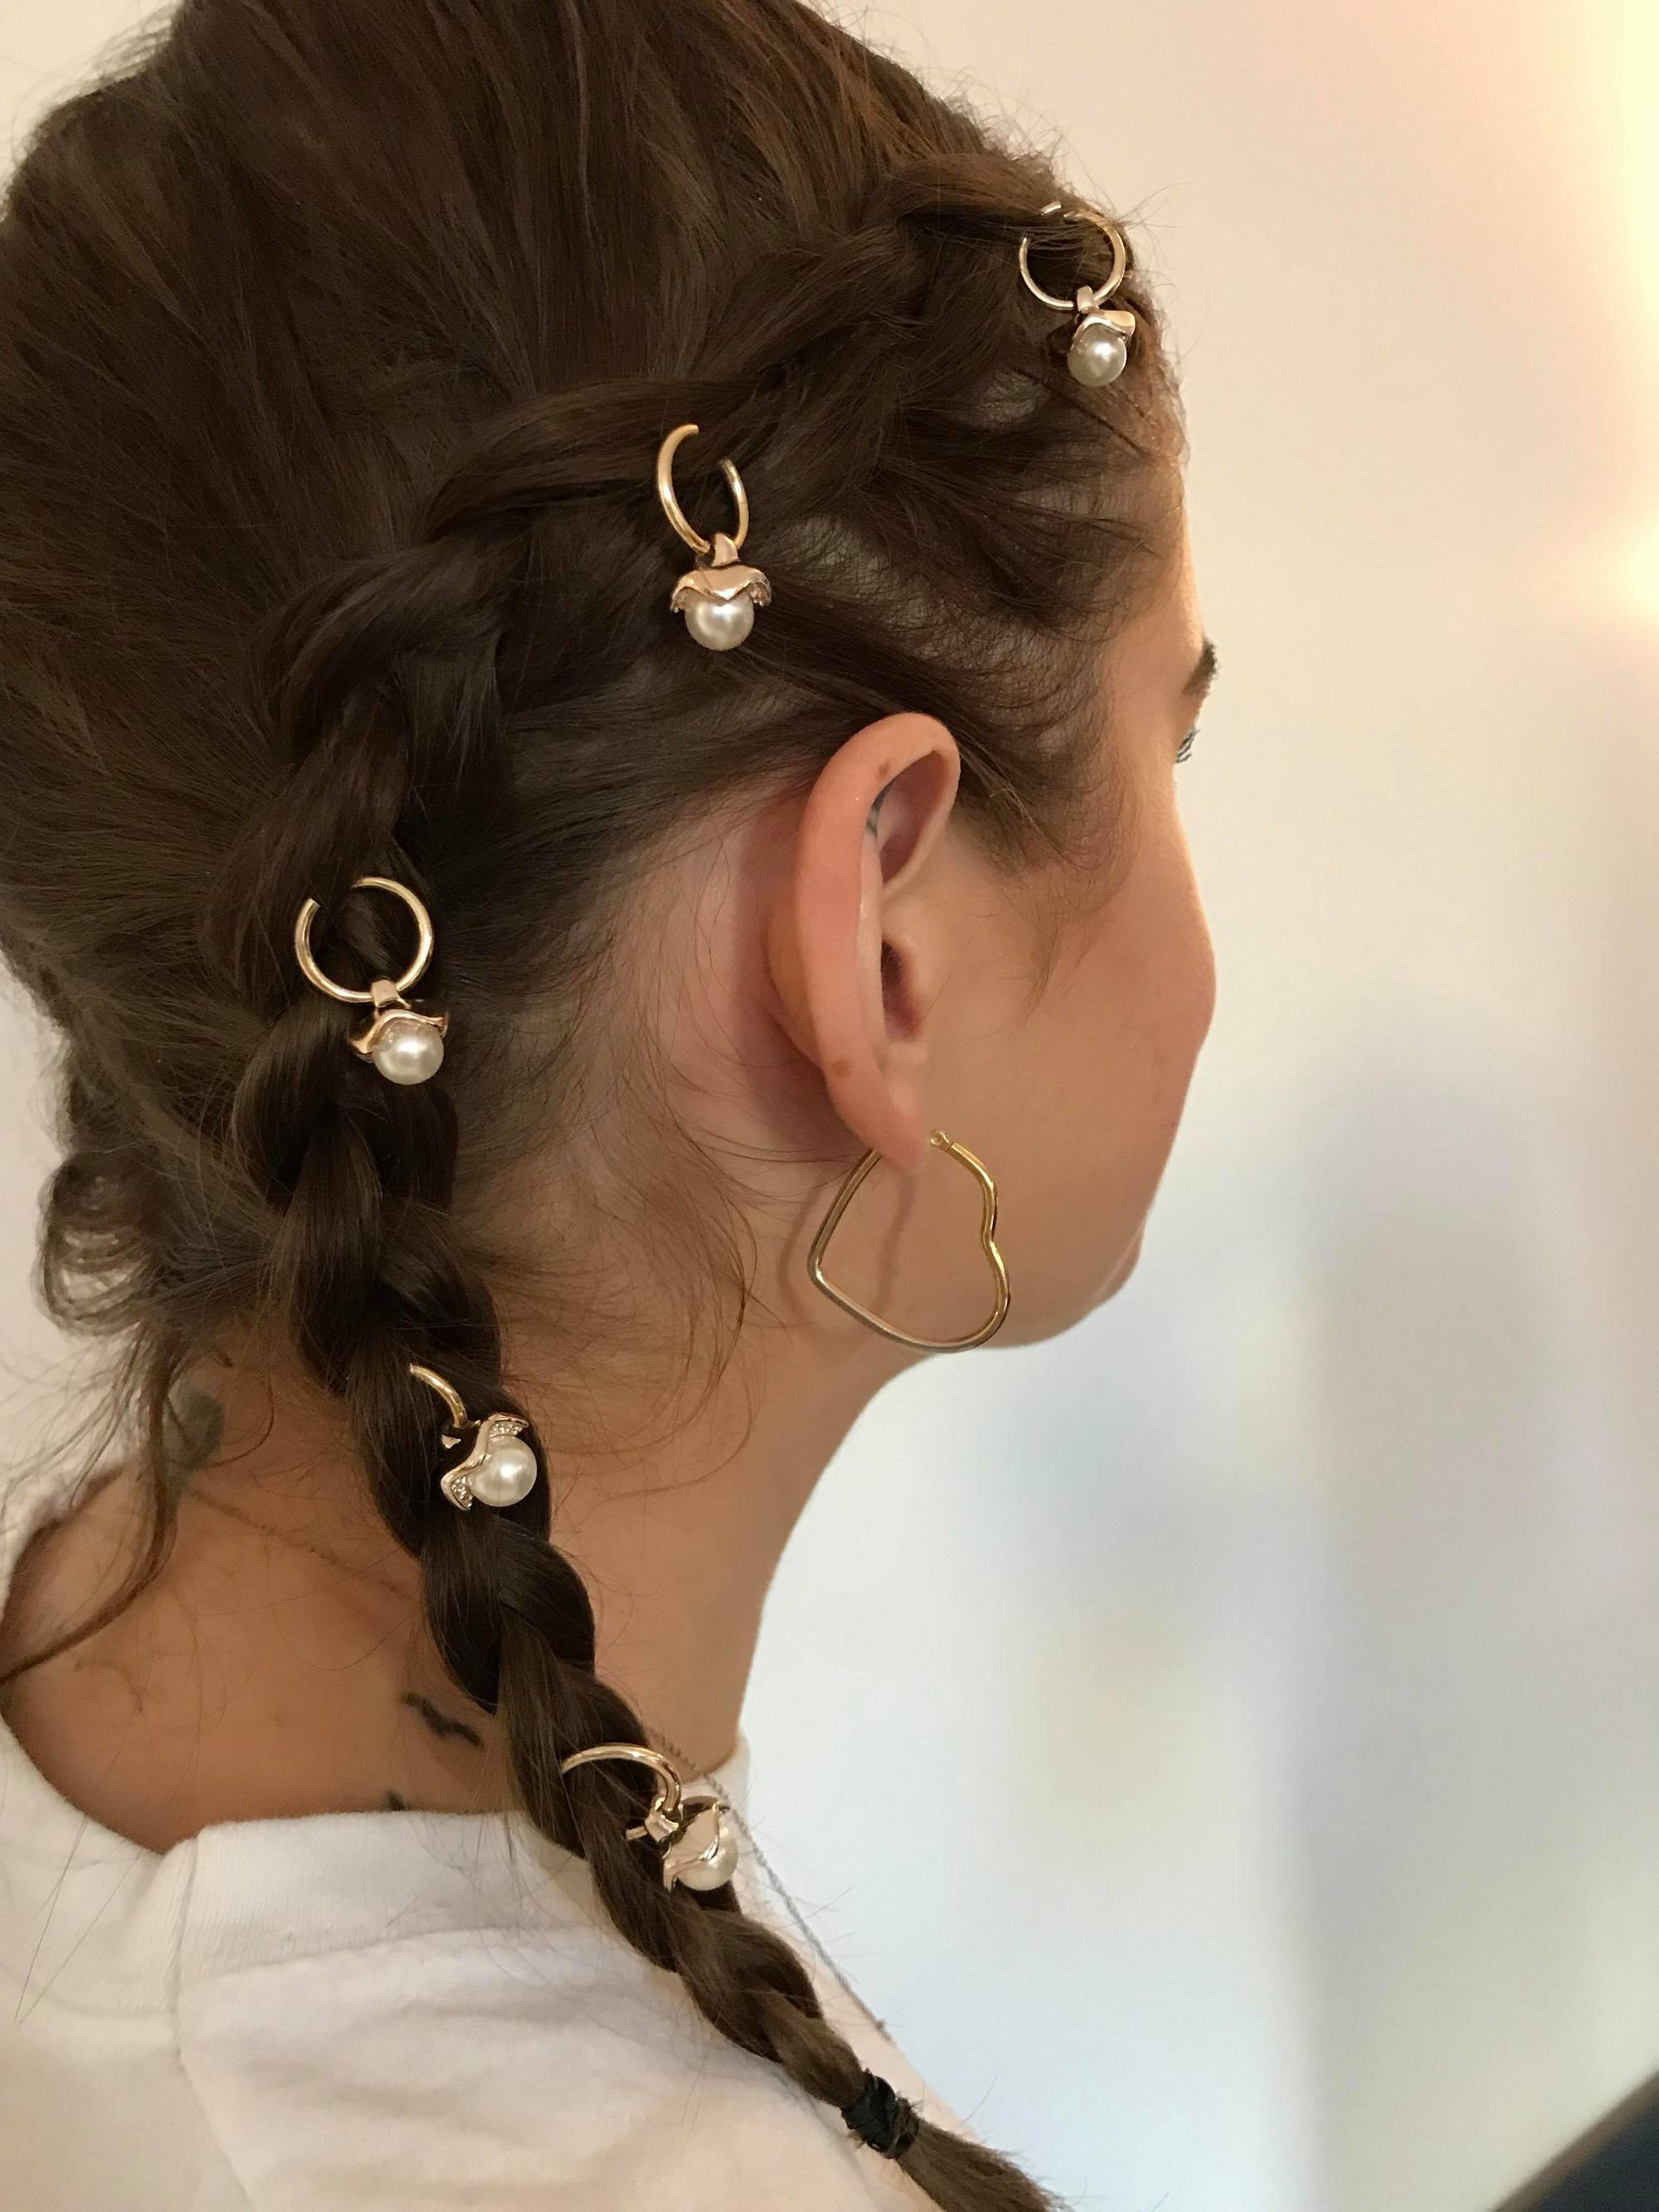 all things hair editor leona with her hair in double dutch braids with pearl embellished hair rings and heart shaped gold earrings